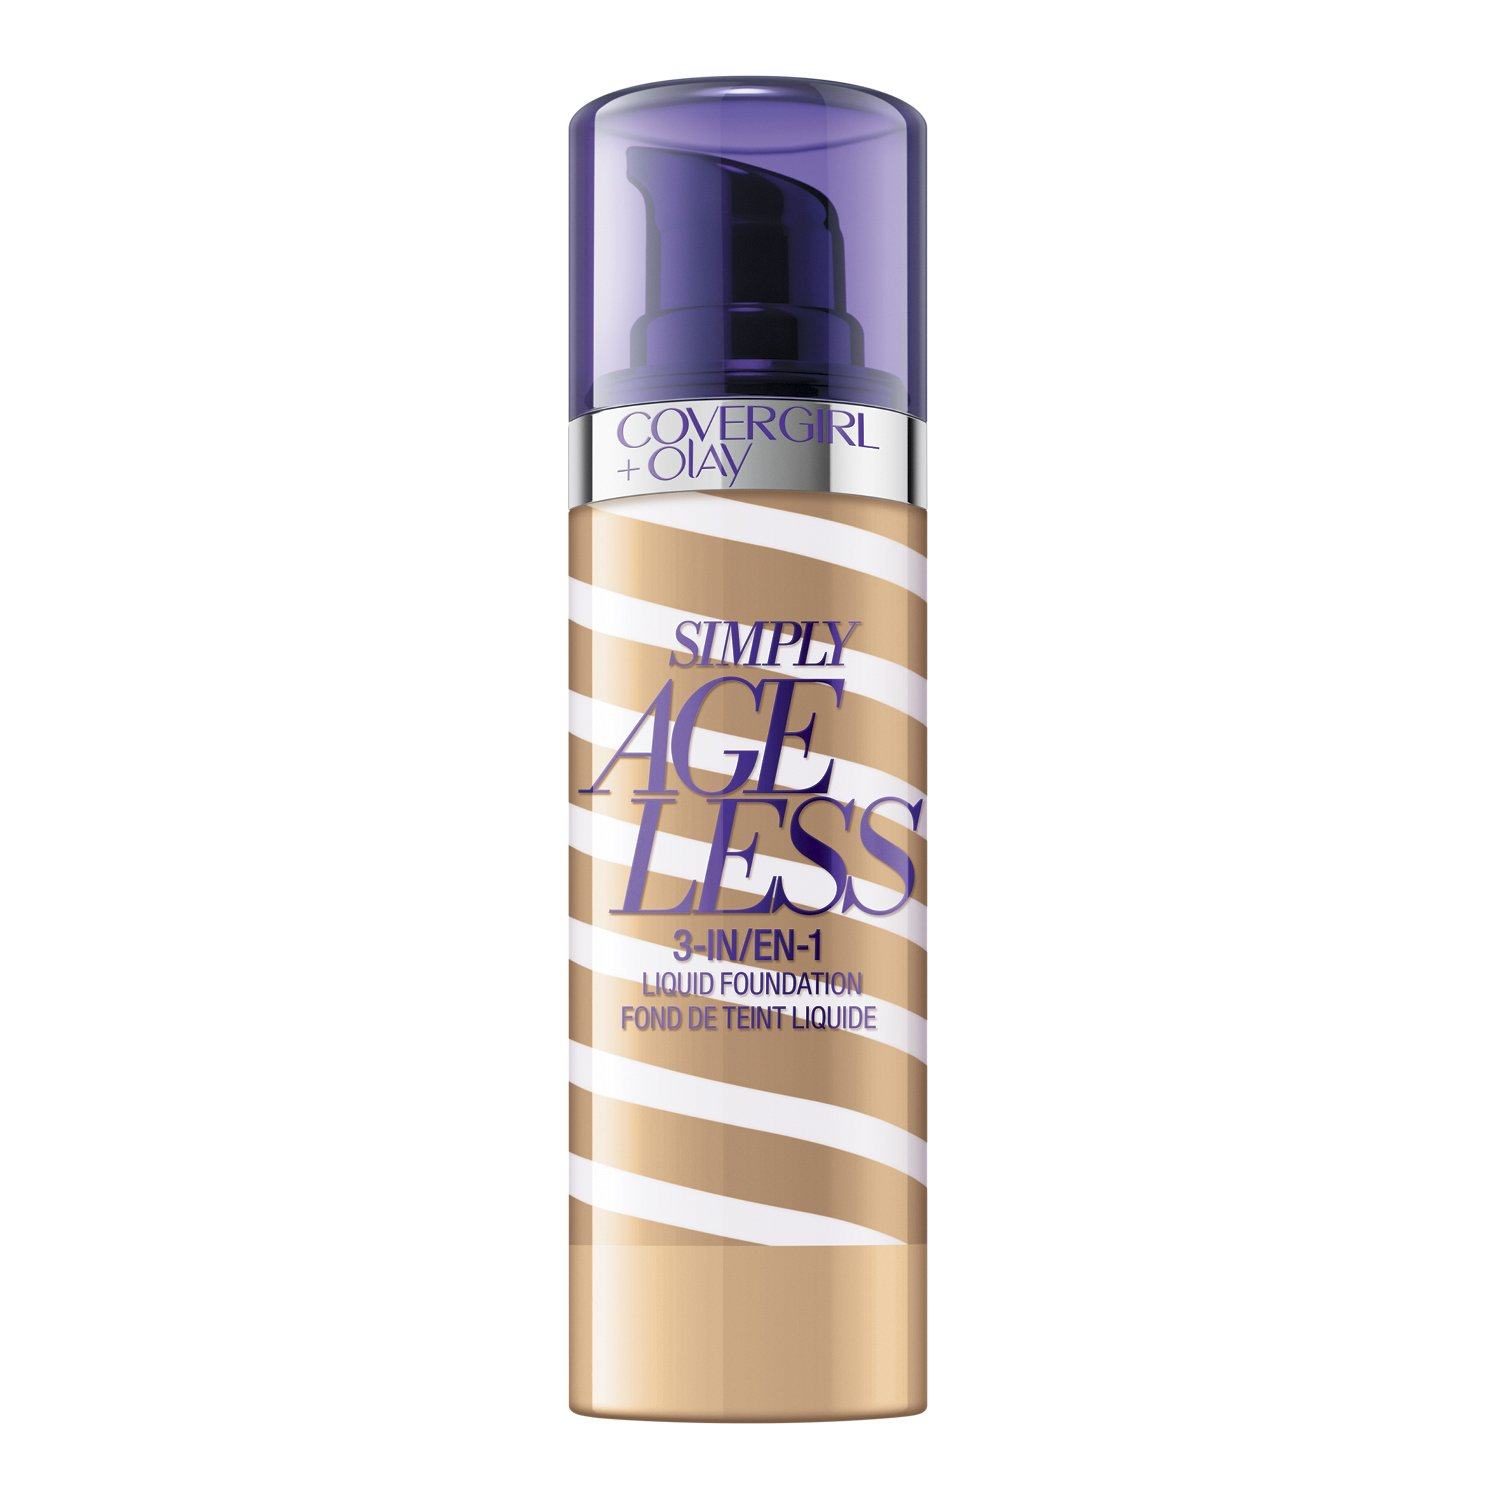 COVERGIRL + Olay Simply Ageless 3-in-1 Liquid Foundation, the #1 Anti-Aging Foundation Now In A Liquid, Buff Beige Color, 1 Ounce